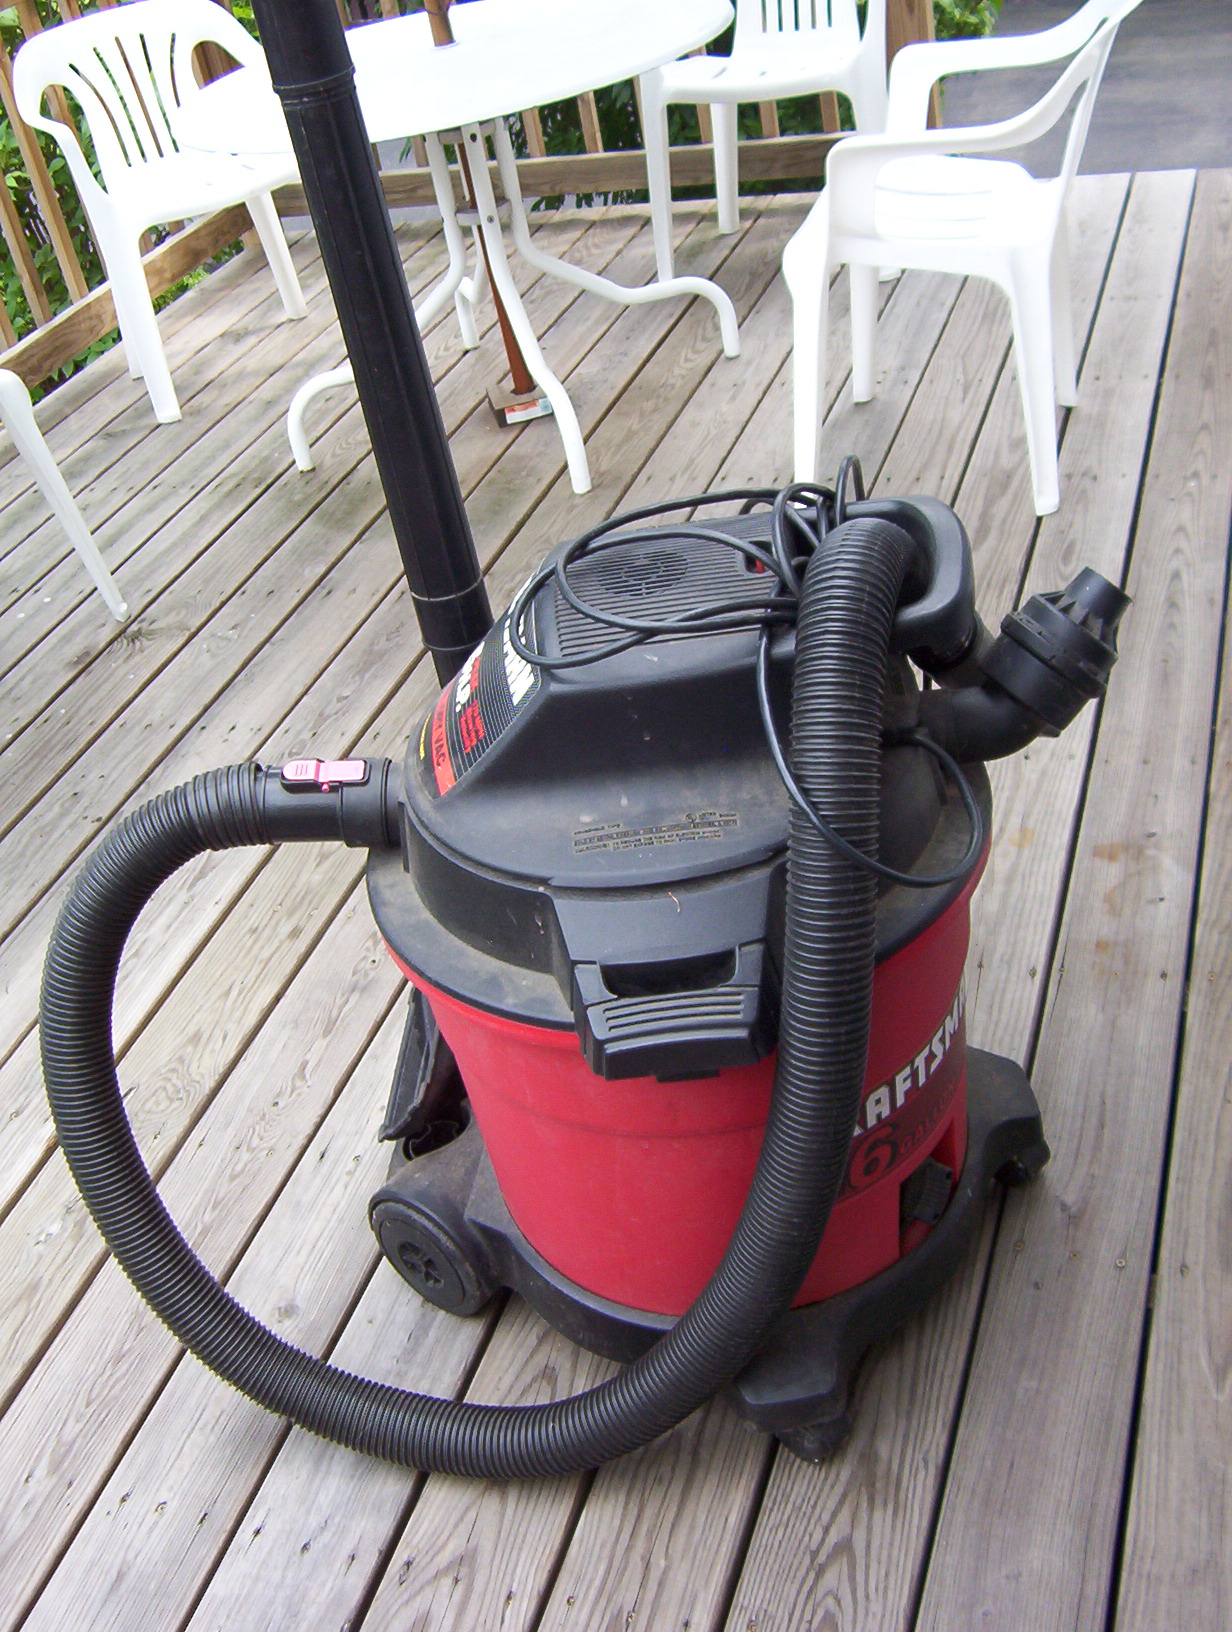 a carpet cleaning macine on a wooden deck with white chairs and table in the backgound